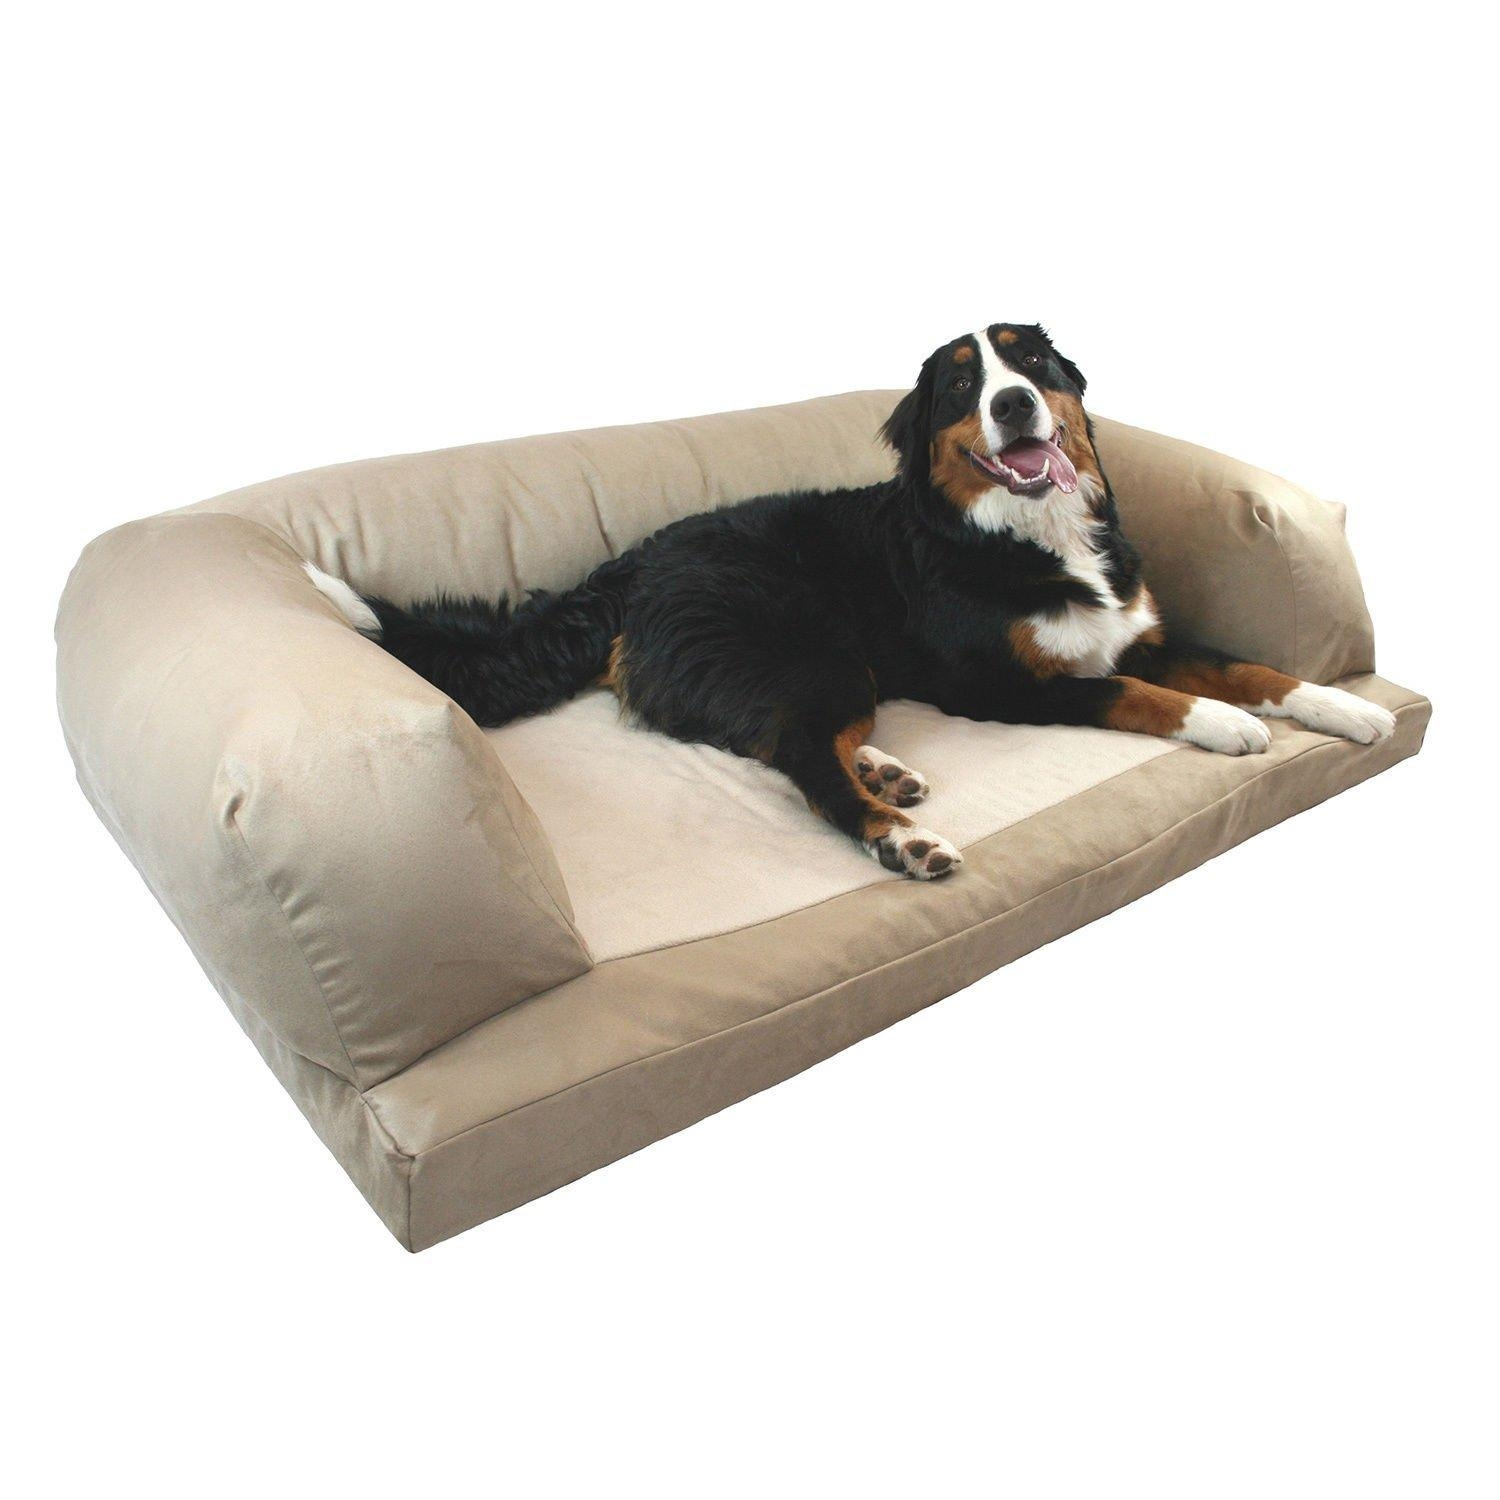 Sofas Center : Aspen Pet Sofa For Dogs Cats Color Varies Chewy Com Inside Sofas For Dogs (Image 11 of 20)